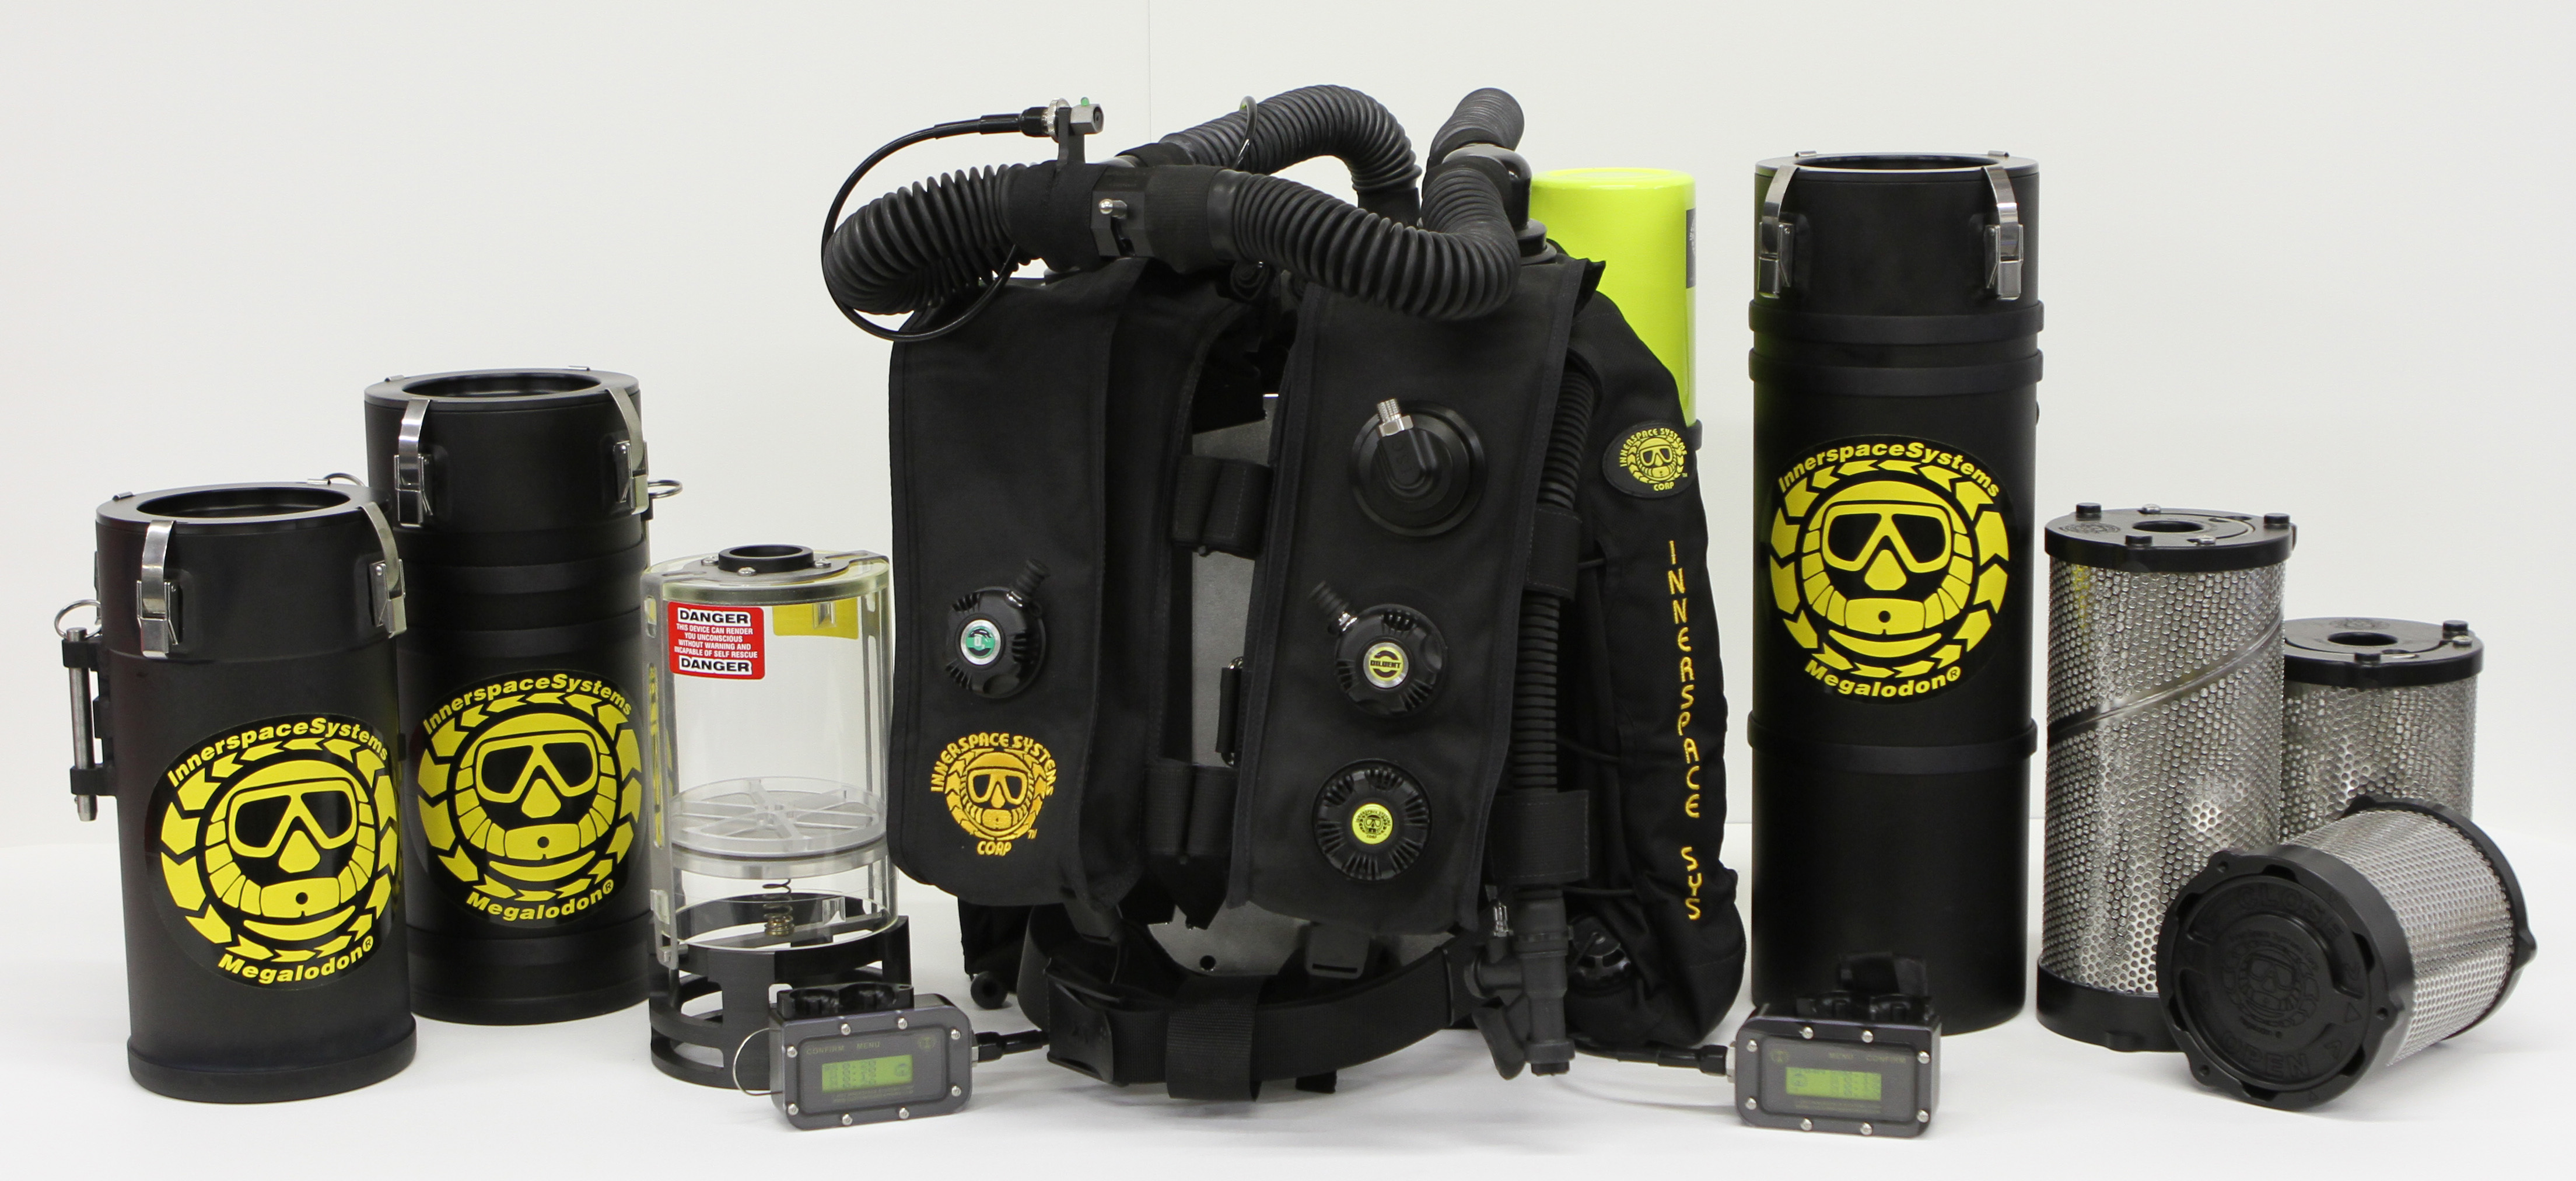 Rebreather Products From Isc Innserspace Systems Corp